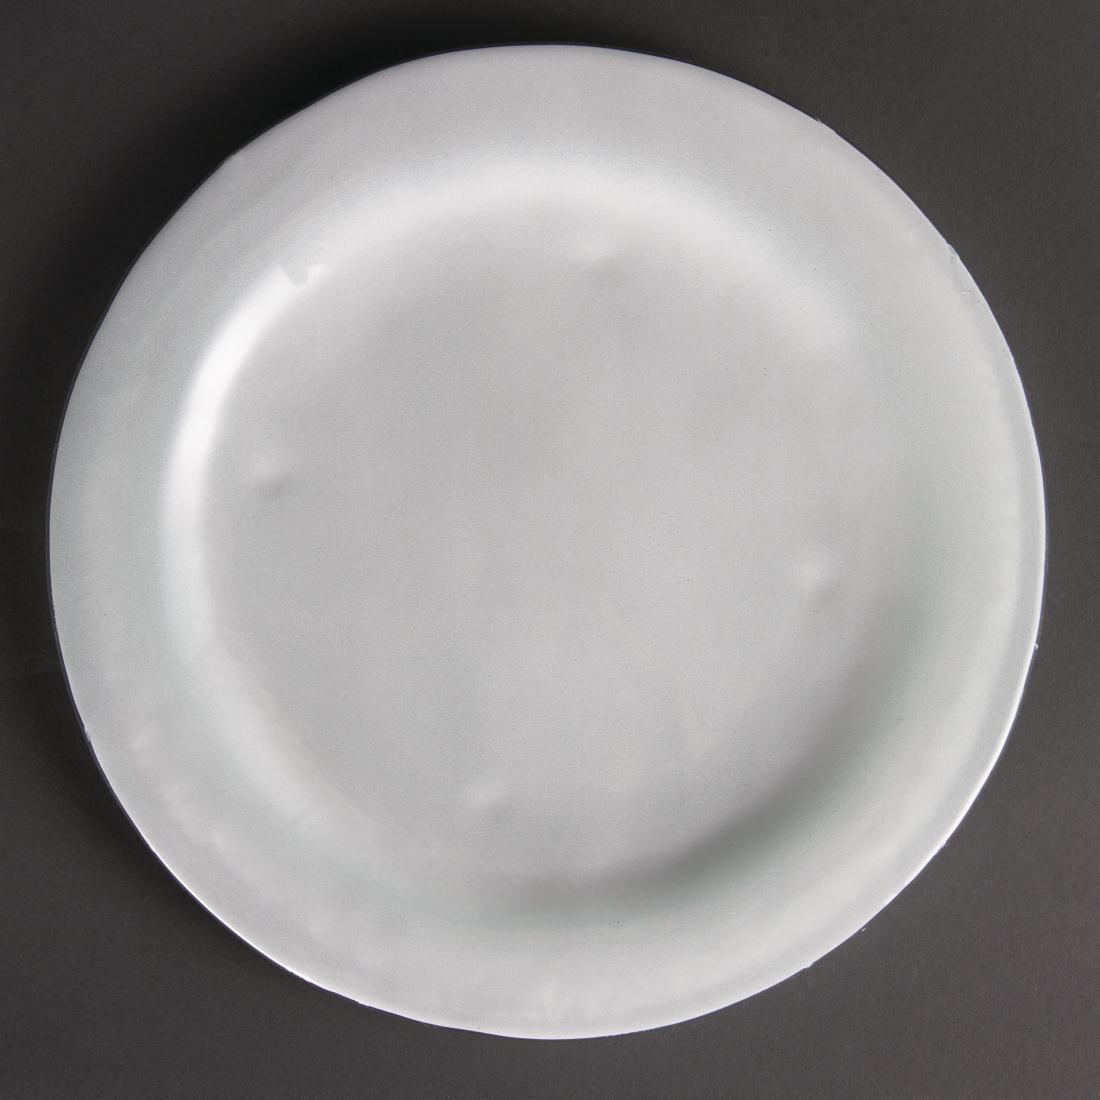 Olympia Round Glass Plates Frosted White 270mm